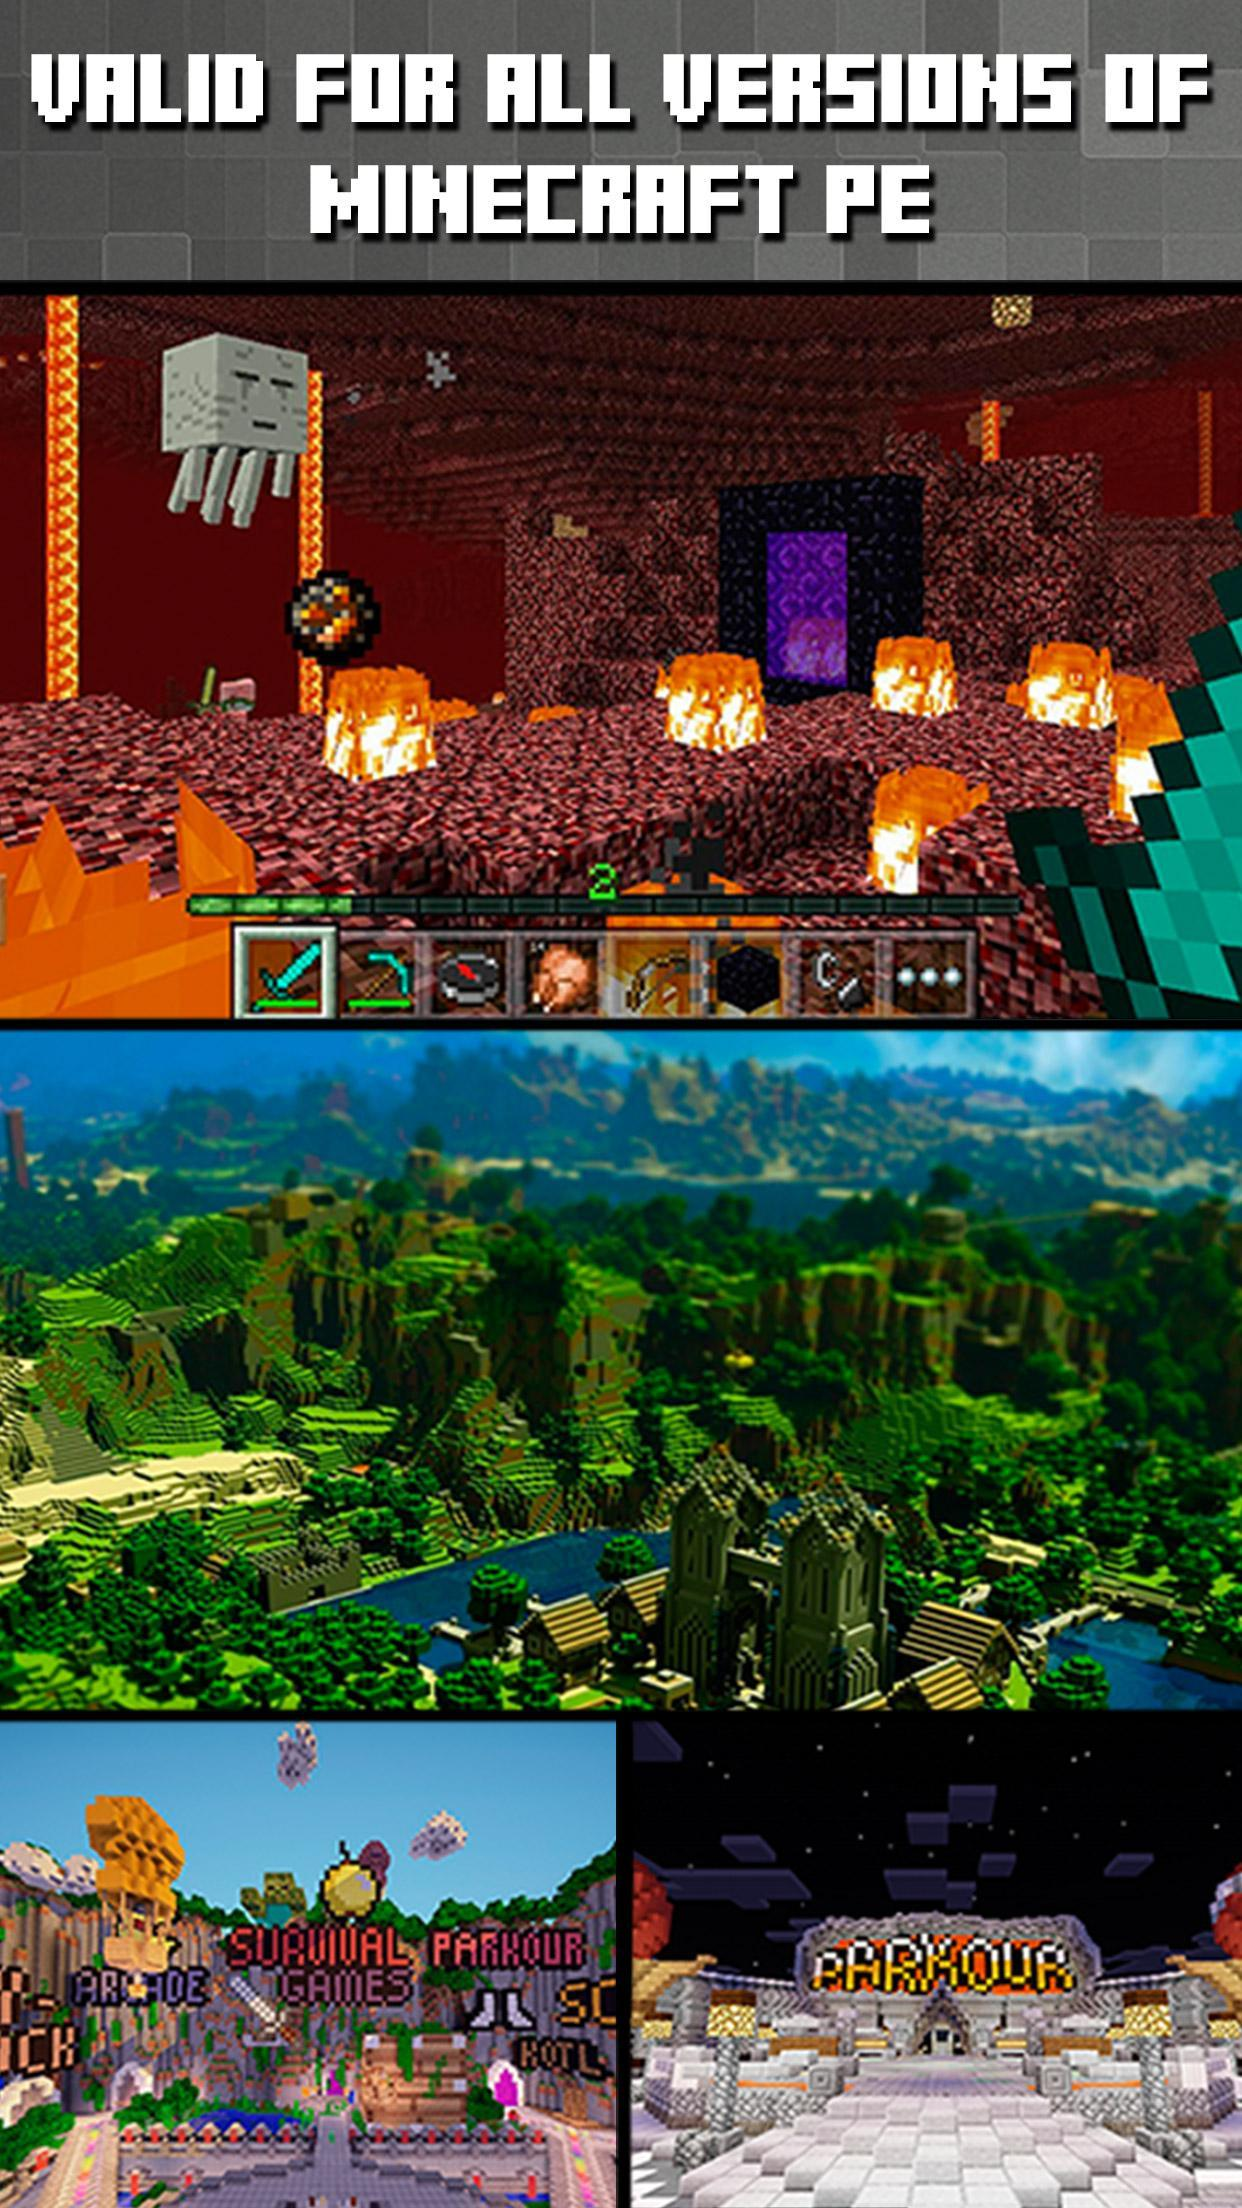 Servers for Minecraft PE for Android - APK Download